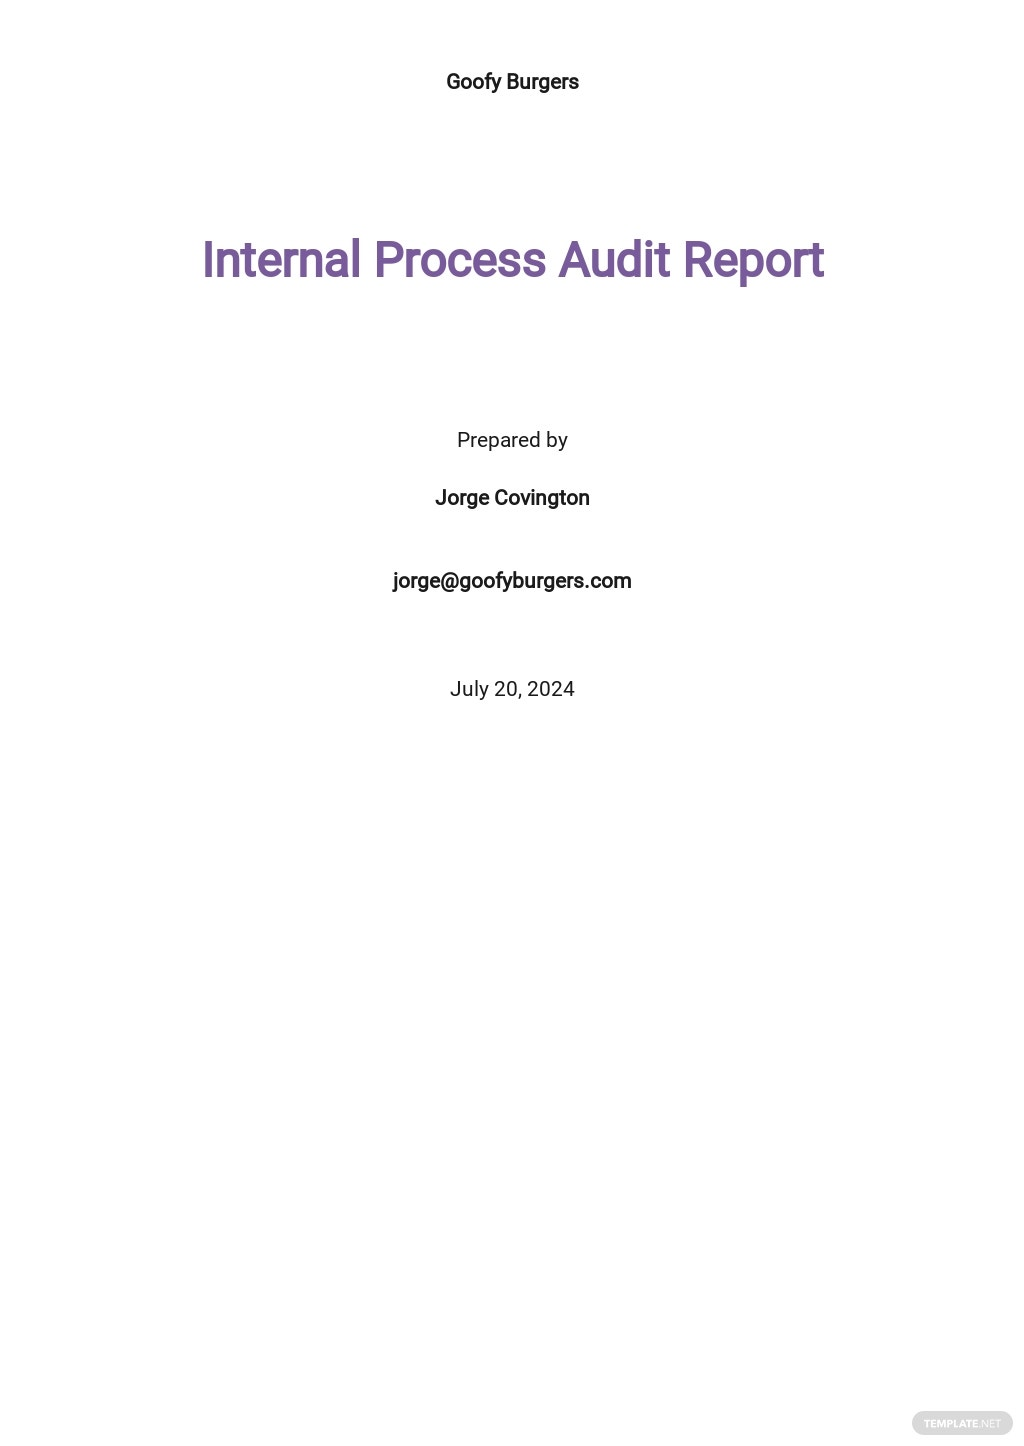 Internal Process Audit Report Template.jpe